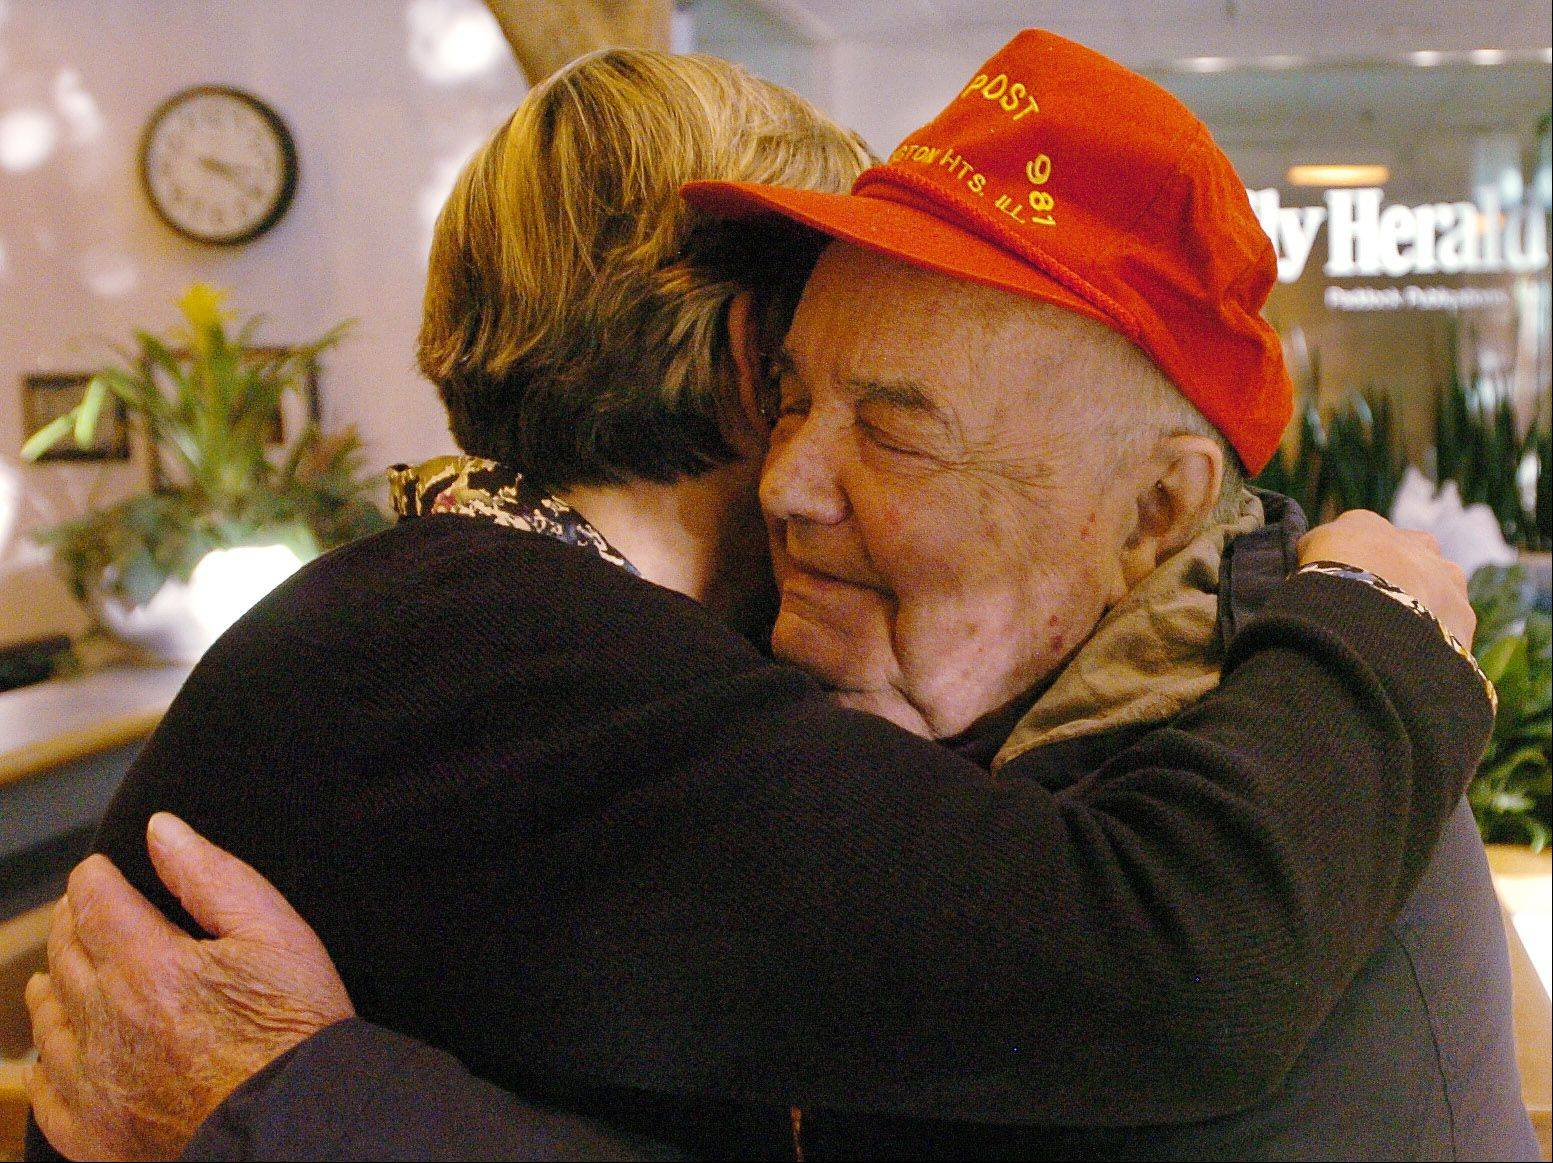 Walt Meder of Arlington Heights inspired the Hope for the Holidays toy drive. Here, Meder is hugging M. Eileen Brown, the director of innovations at the Daily Herald Media Group.